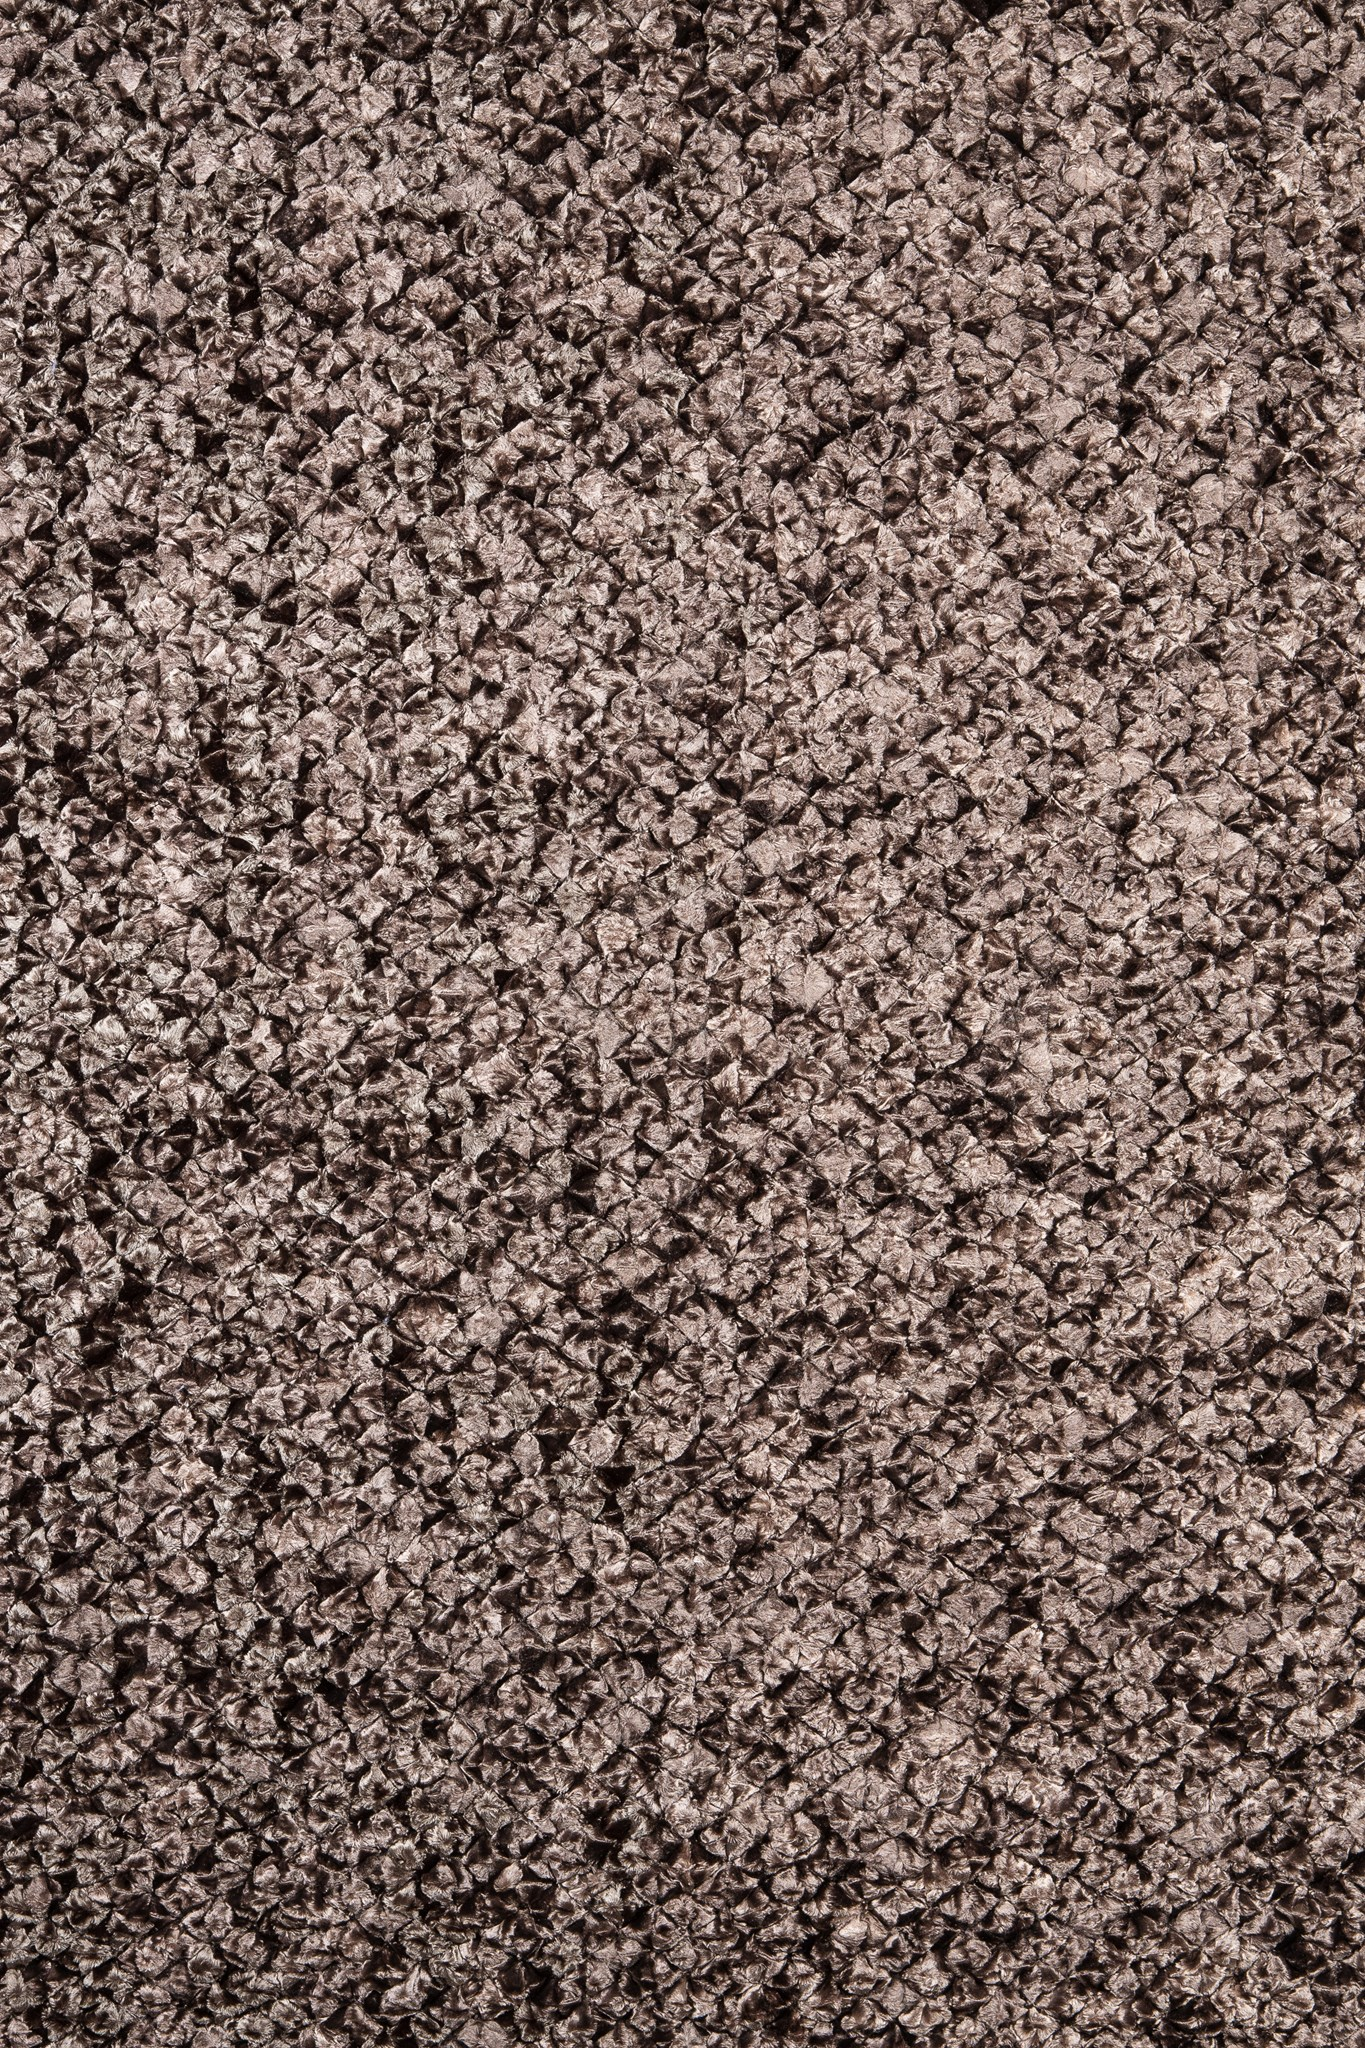 Shimmer Pebble Rug: 6'x9' Chocolate